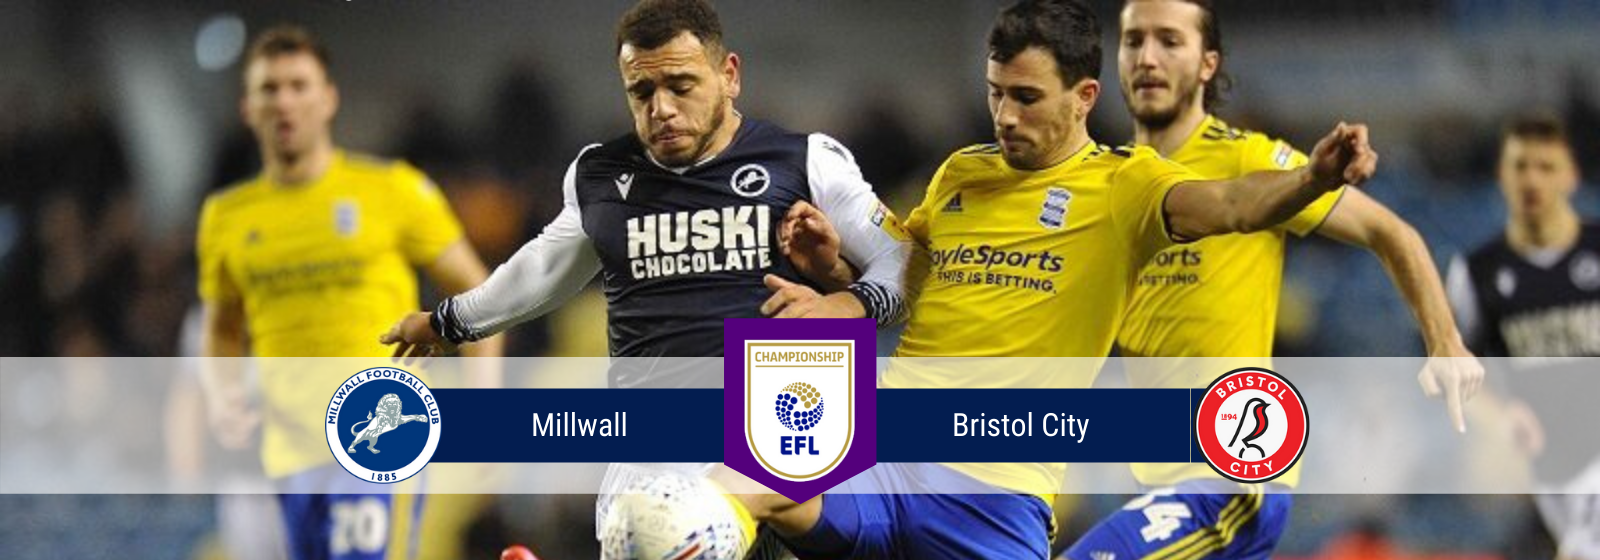 Asianconnect: Millwall vs Bristol City Odds for February 29, 2020